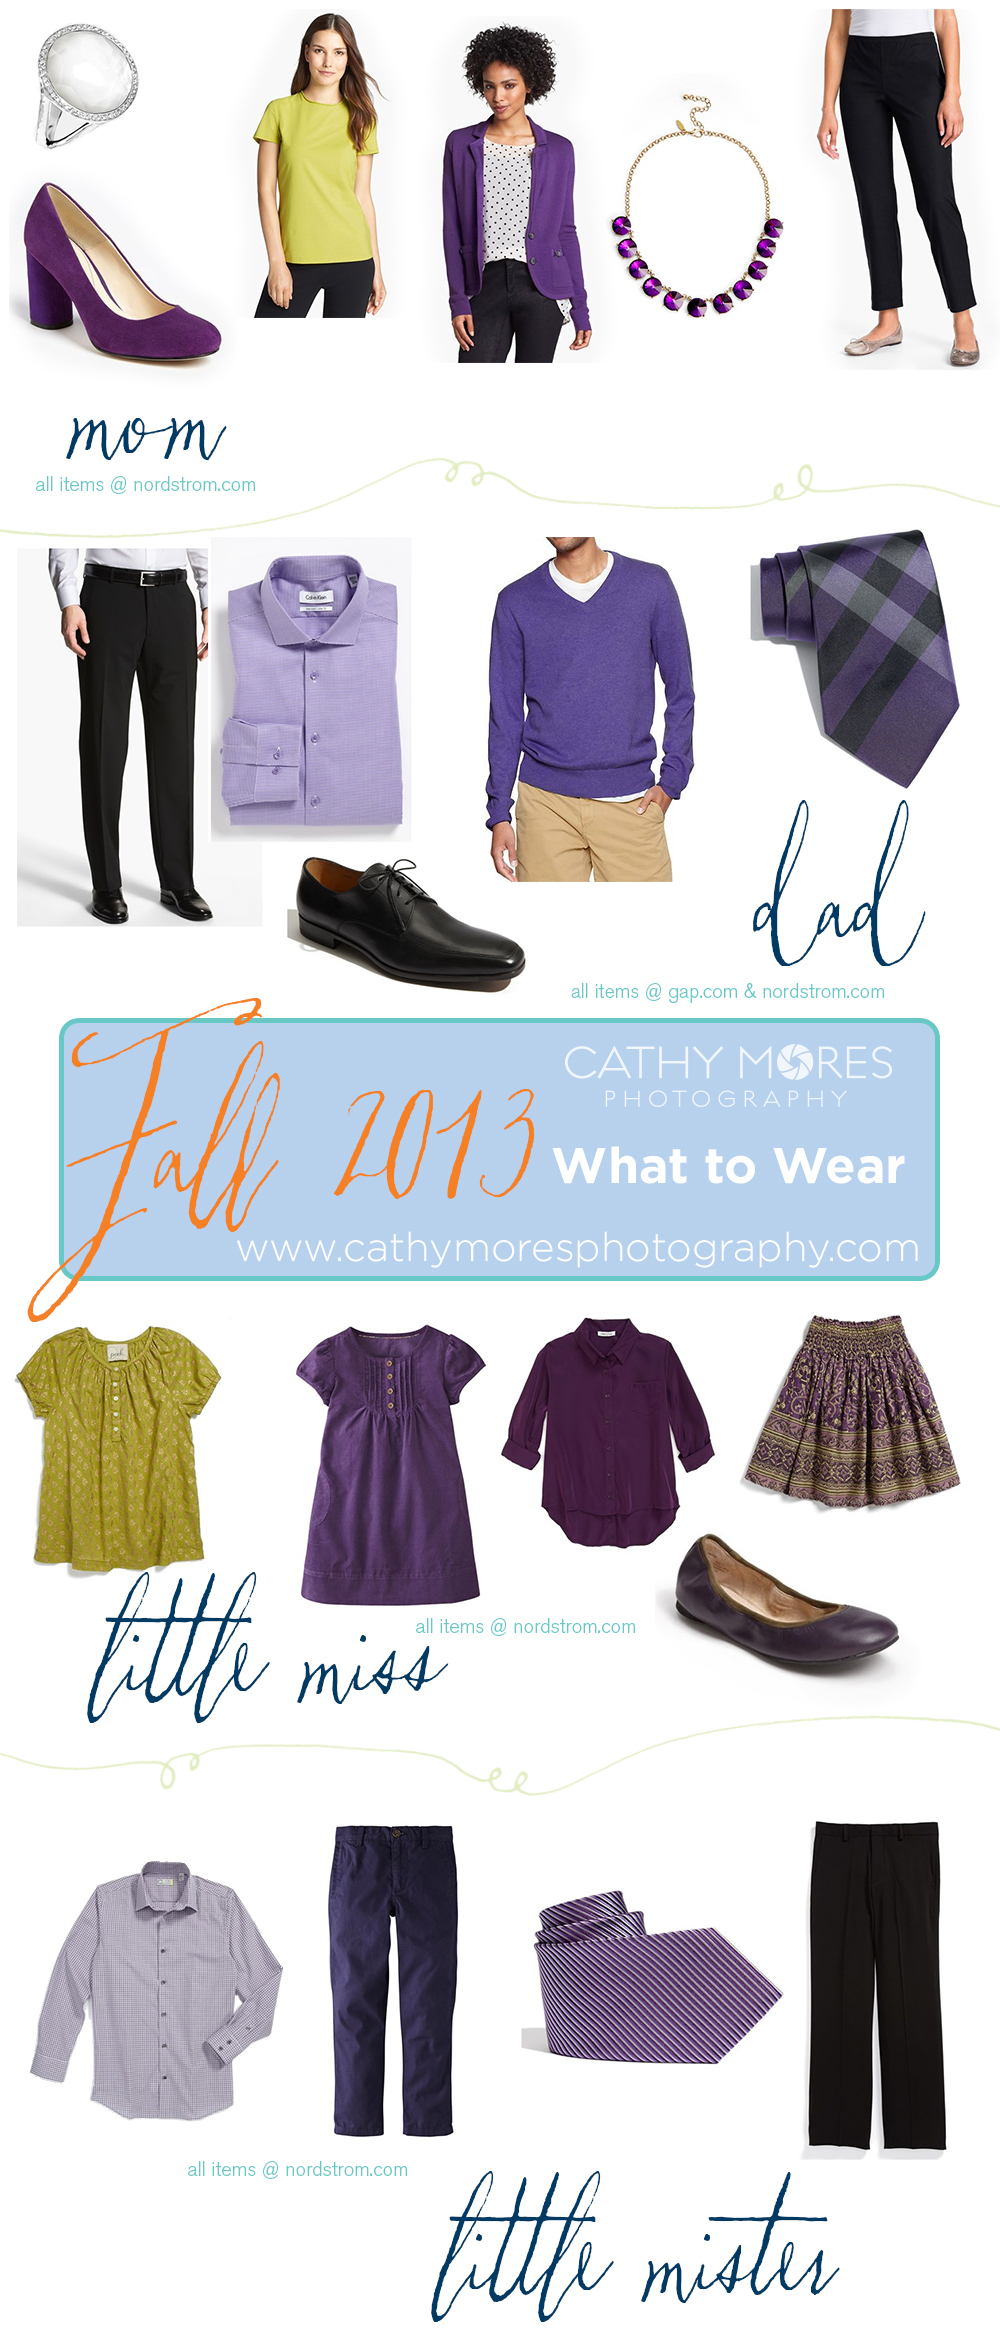 whattowearguide_purple_chart1 (1).jpg